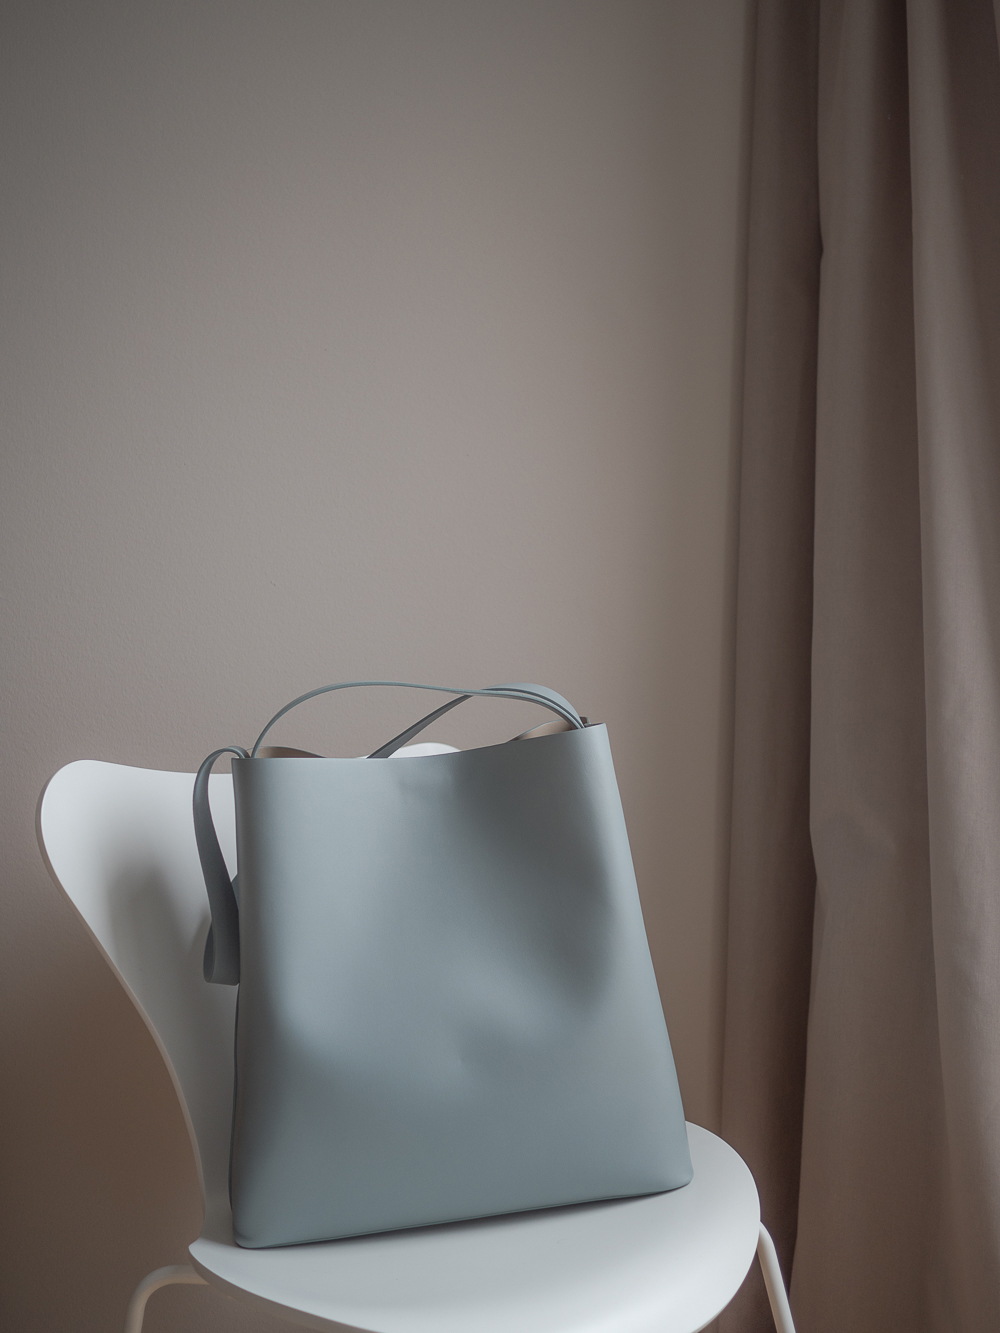 The seasonless bag by Aesther Ekme